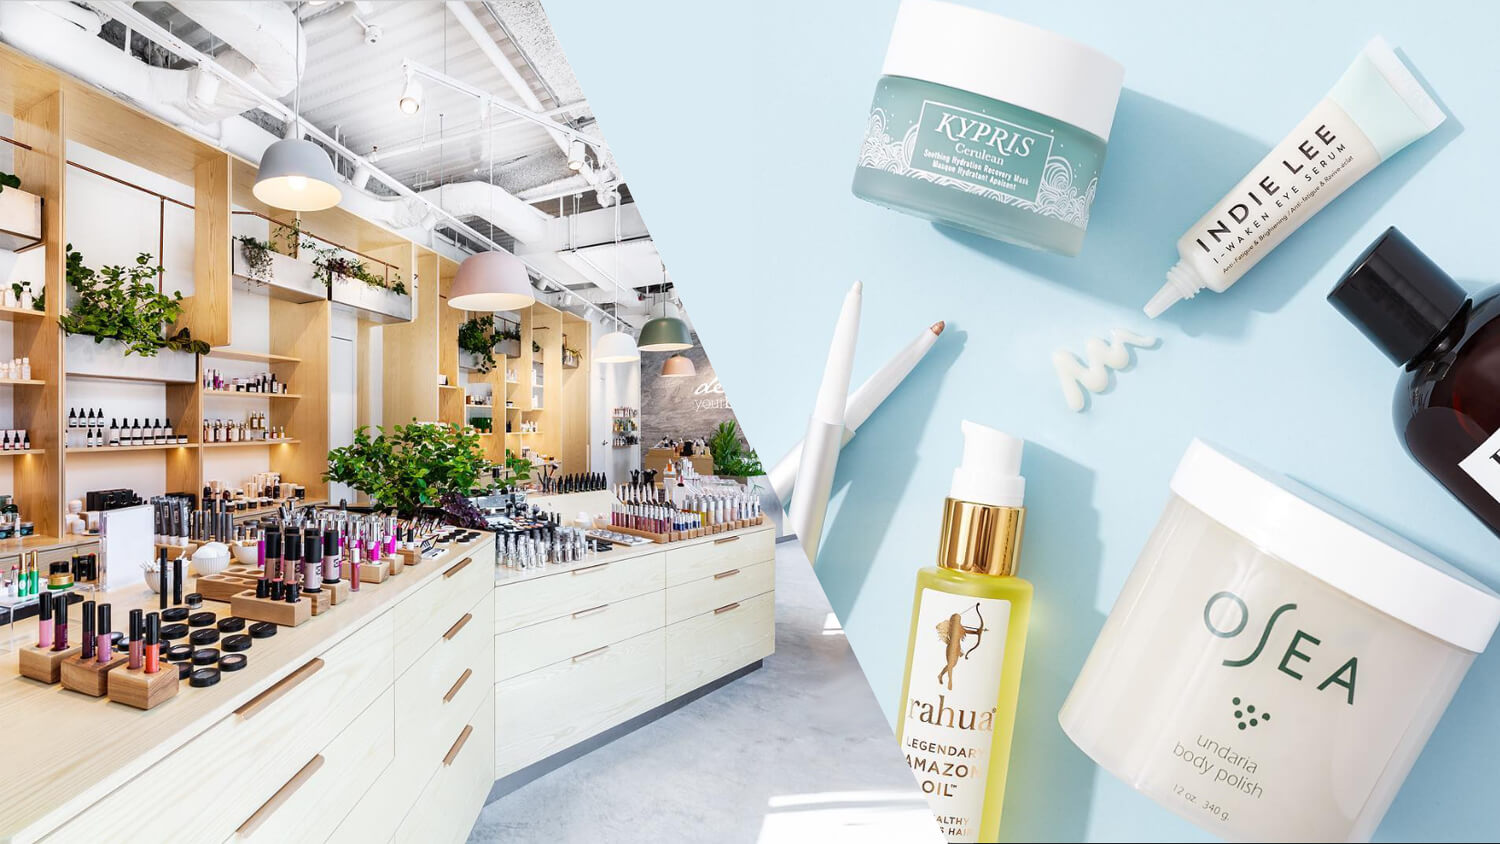 Cruelty-Free Beauty Brand The Detox Market Opens 3-Story New York City Store With Rooftop Garden